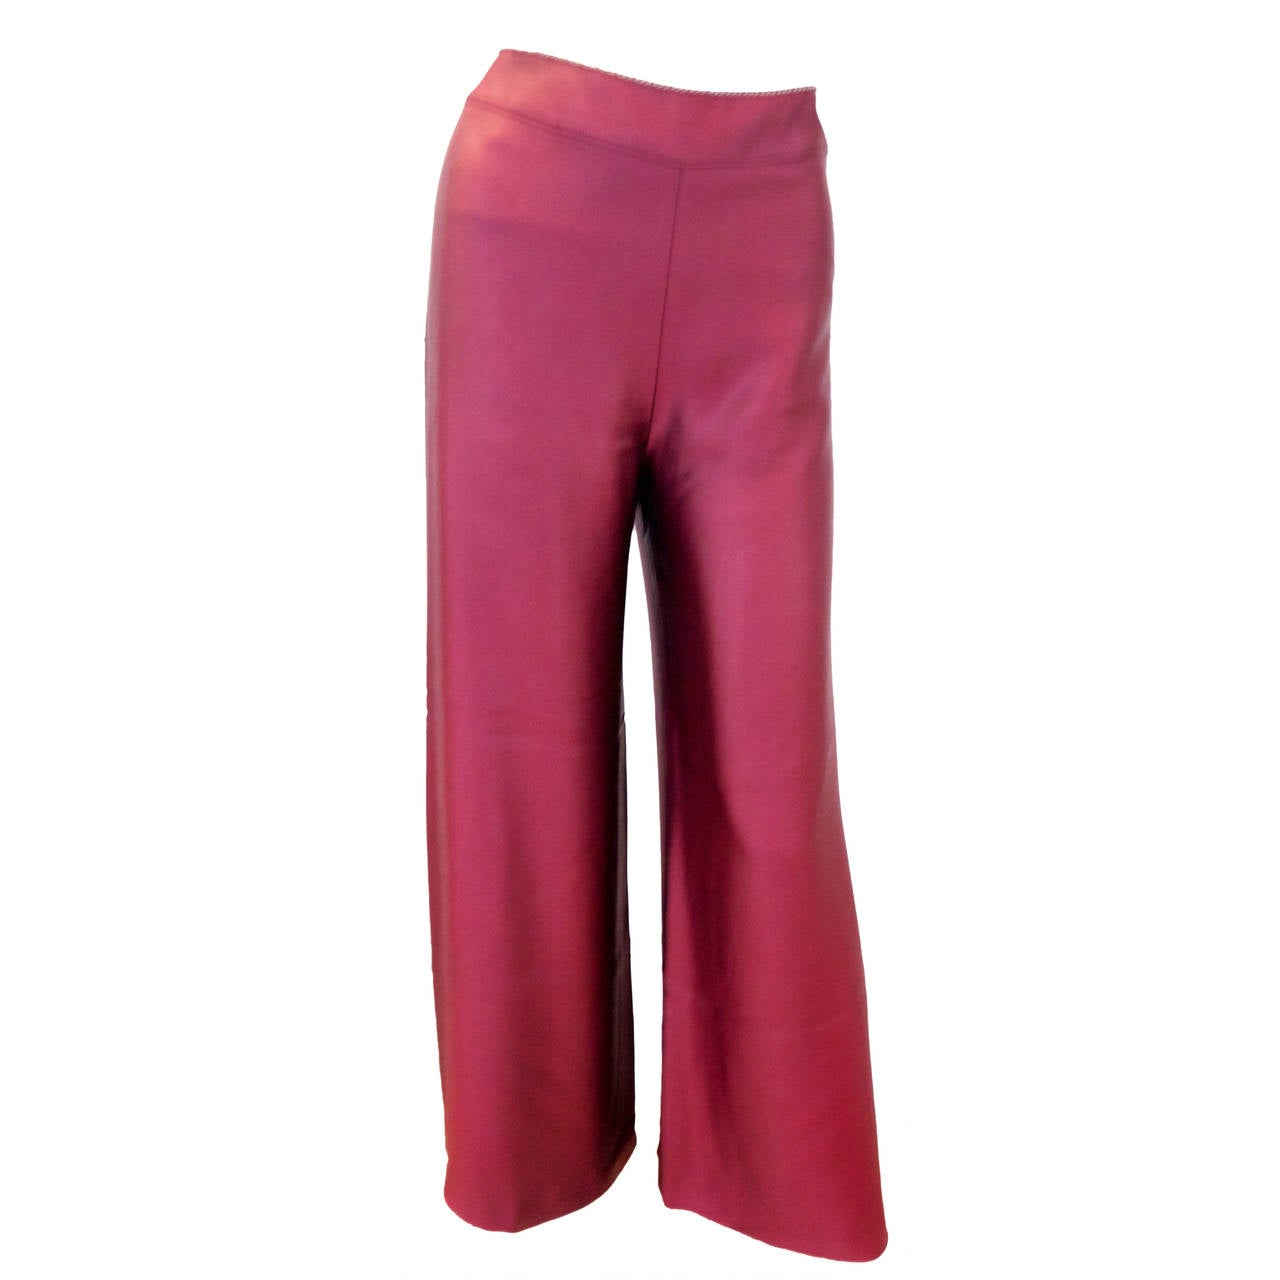 Chanel Burgundy Cocktail Pants with Attached Chain